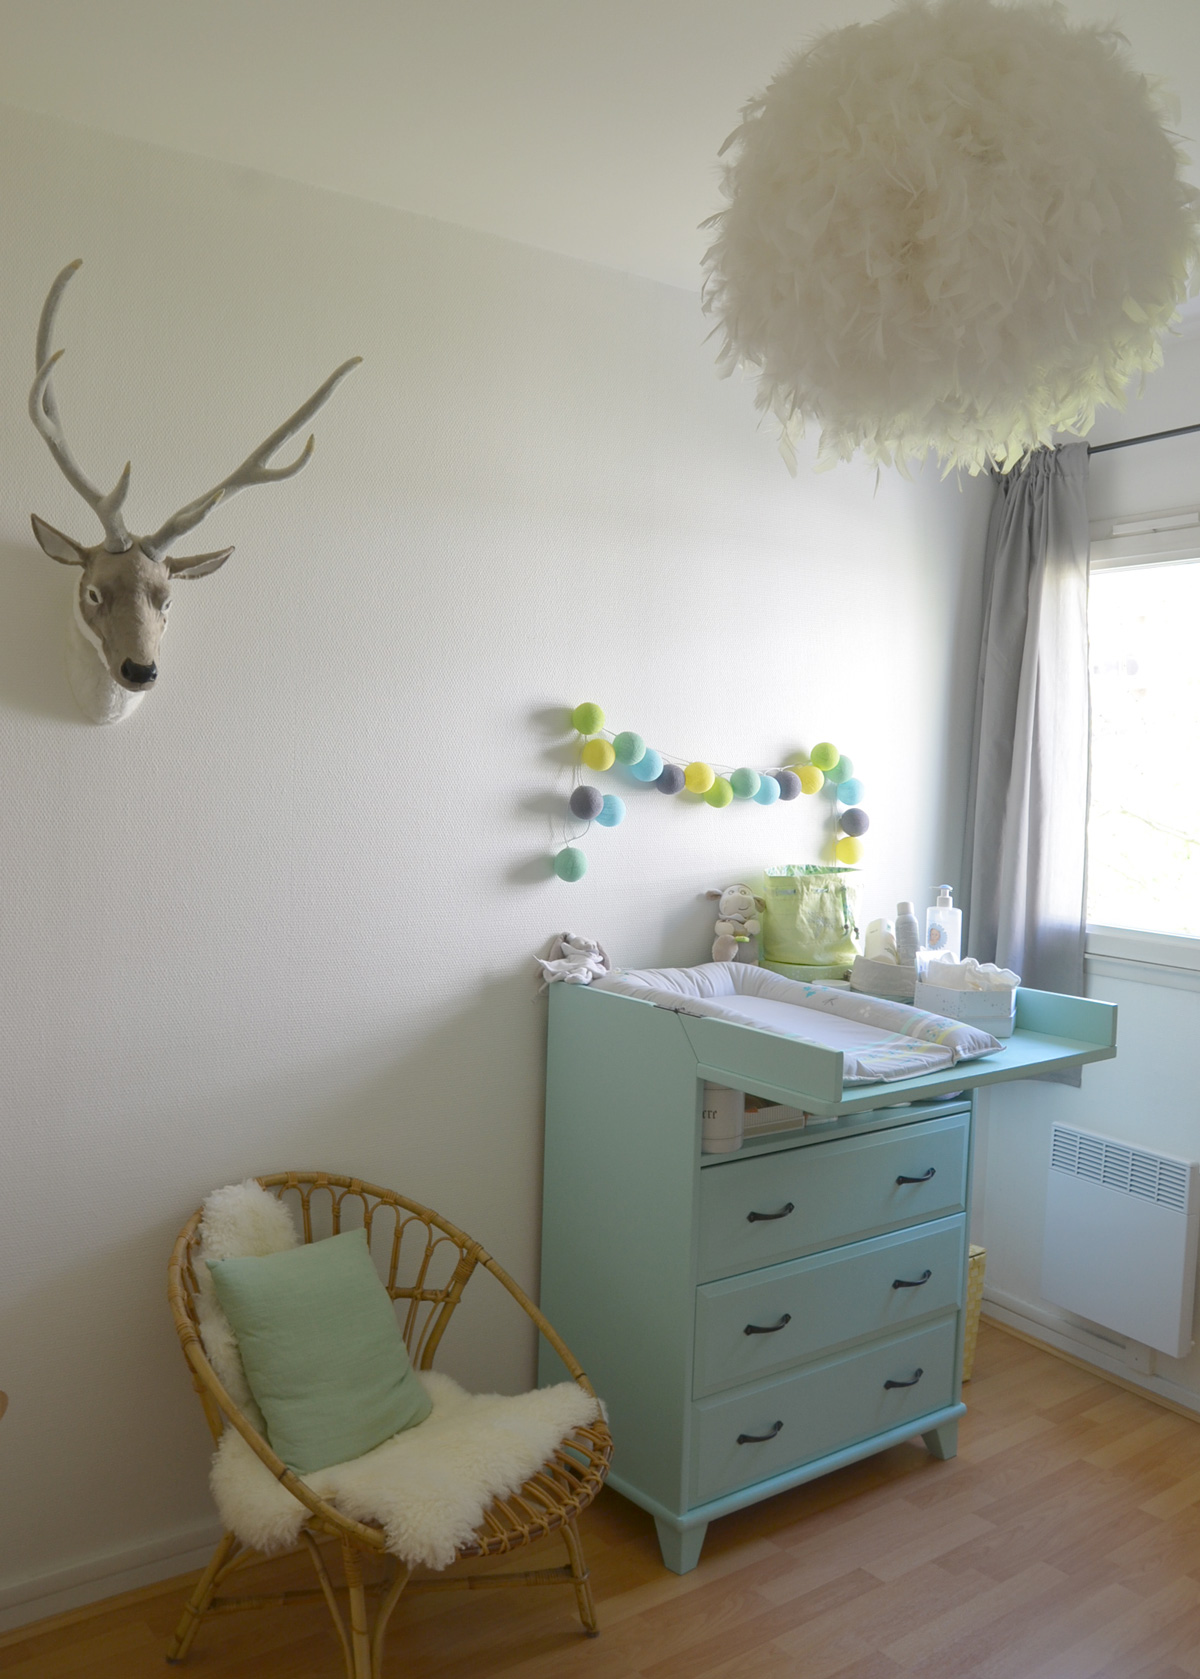 Pin d co chambre b b on pinterest - Decoration chambre bebe ...